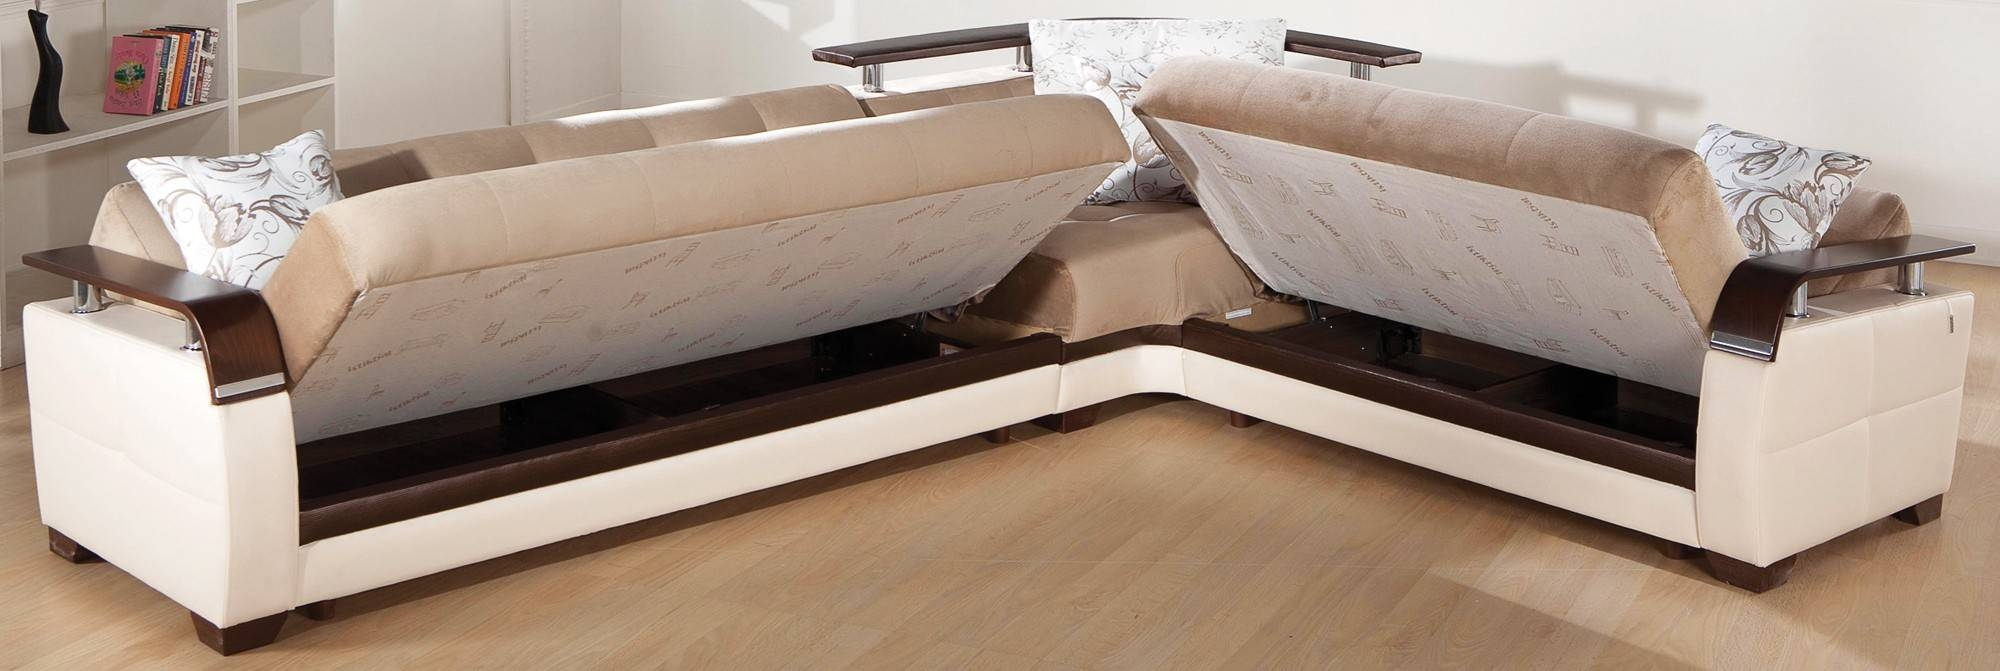 Awesome Sectional Sleeper Sofas Bed Ideas – Sectional Sleeper with Sectional Sofa Beds (Image 1 of 30)